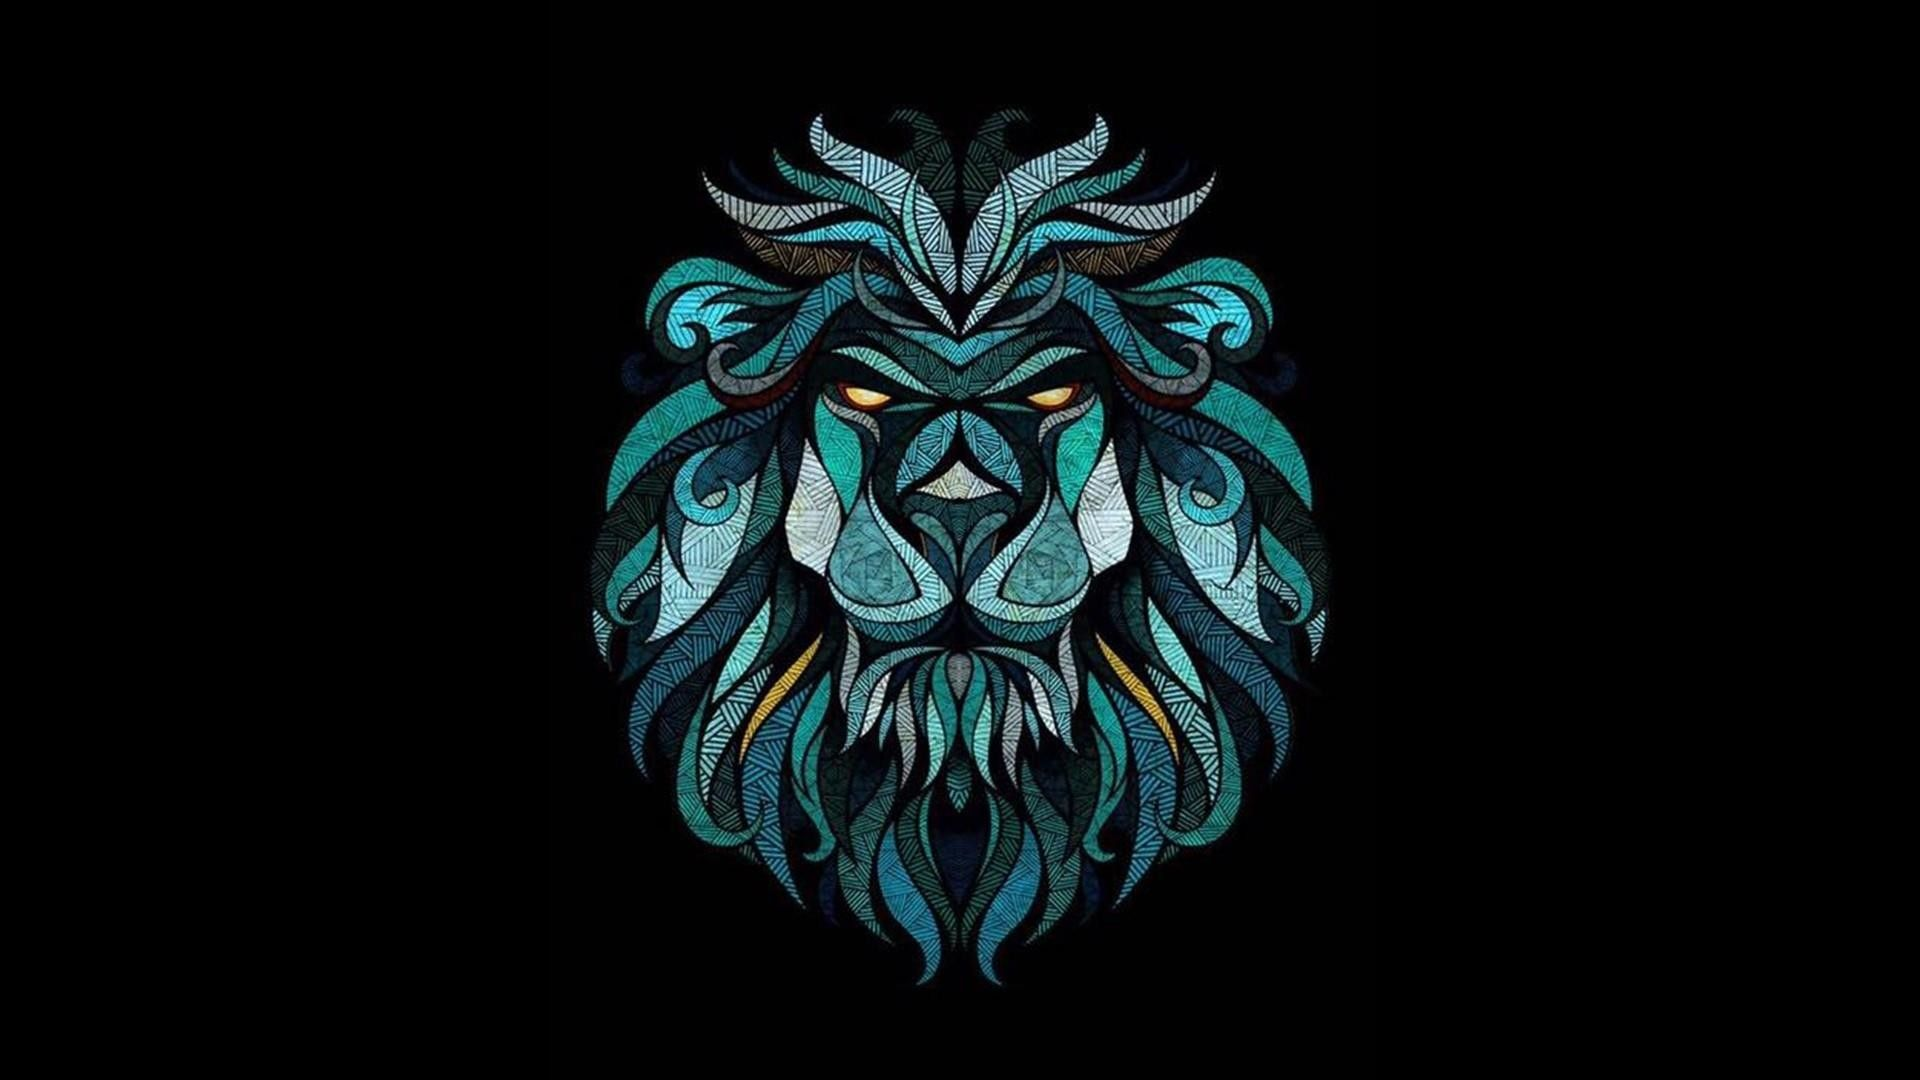 Lion Art wallpaper image